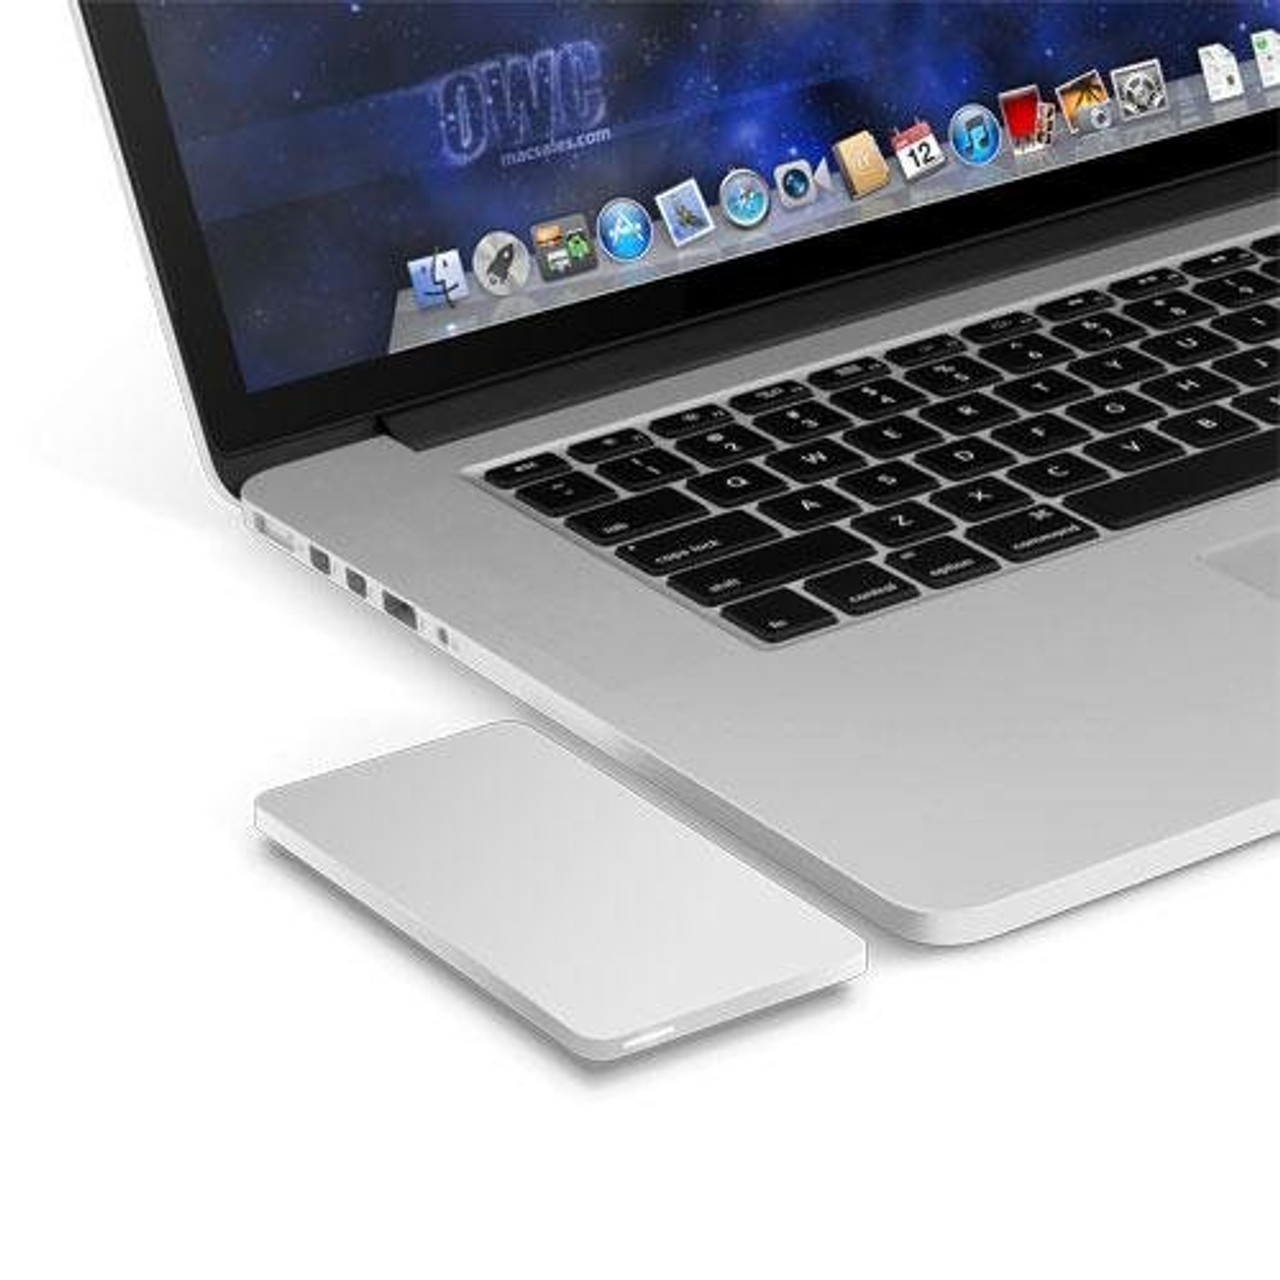 OWC Aura N2 480GB Solid-State Drive with Envoy Pro enclosure for select 2013 and later Macs